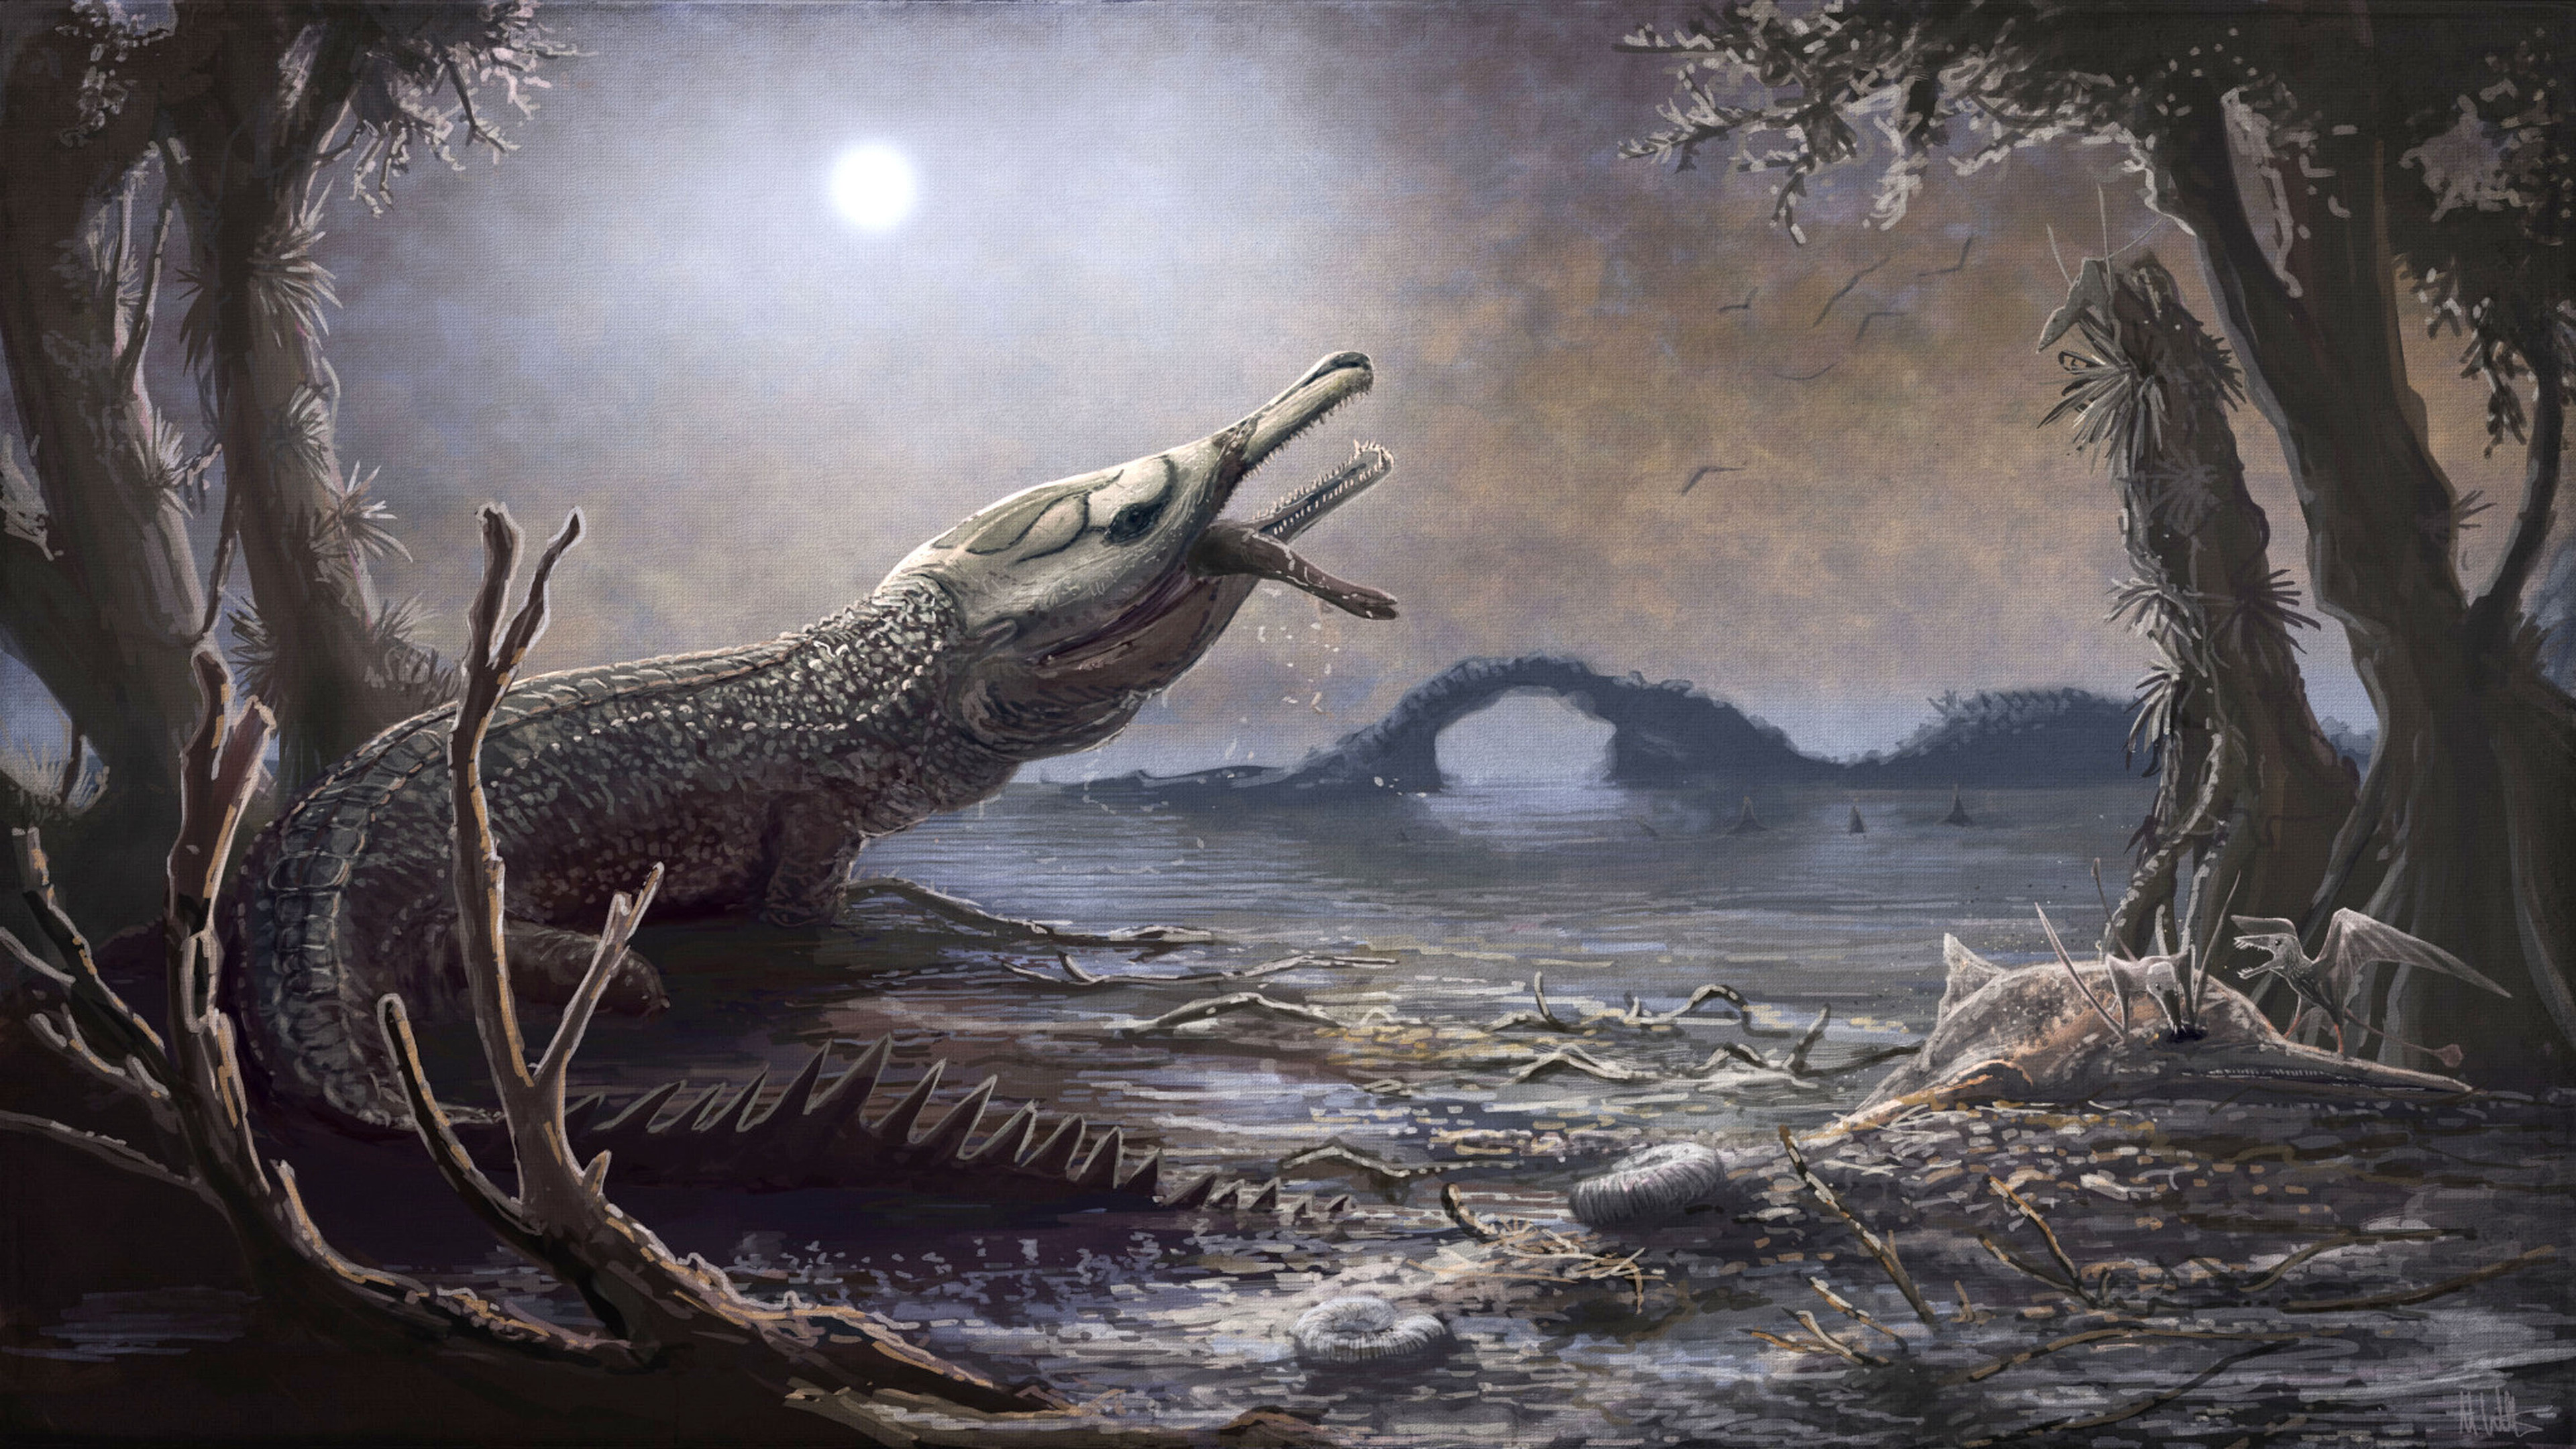 Jurassic crocodile named after late Motorhead frontman Lemmy